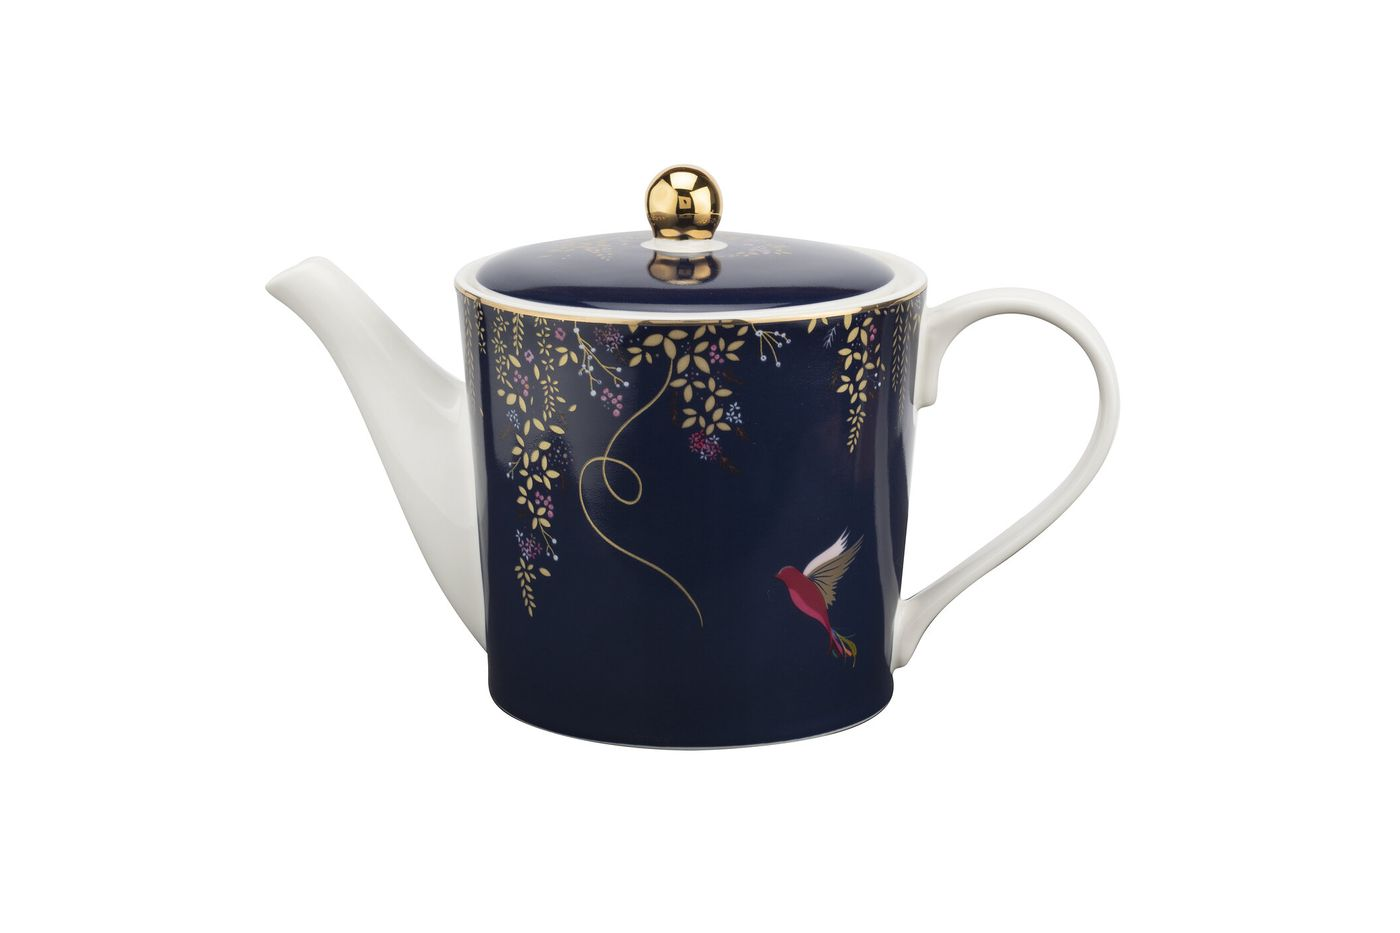 Sara Miller London for Portmeirion Chelsea Collection Teapot 0.5l thumb 1